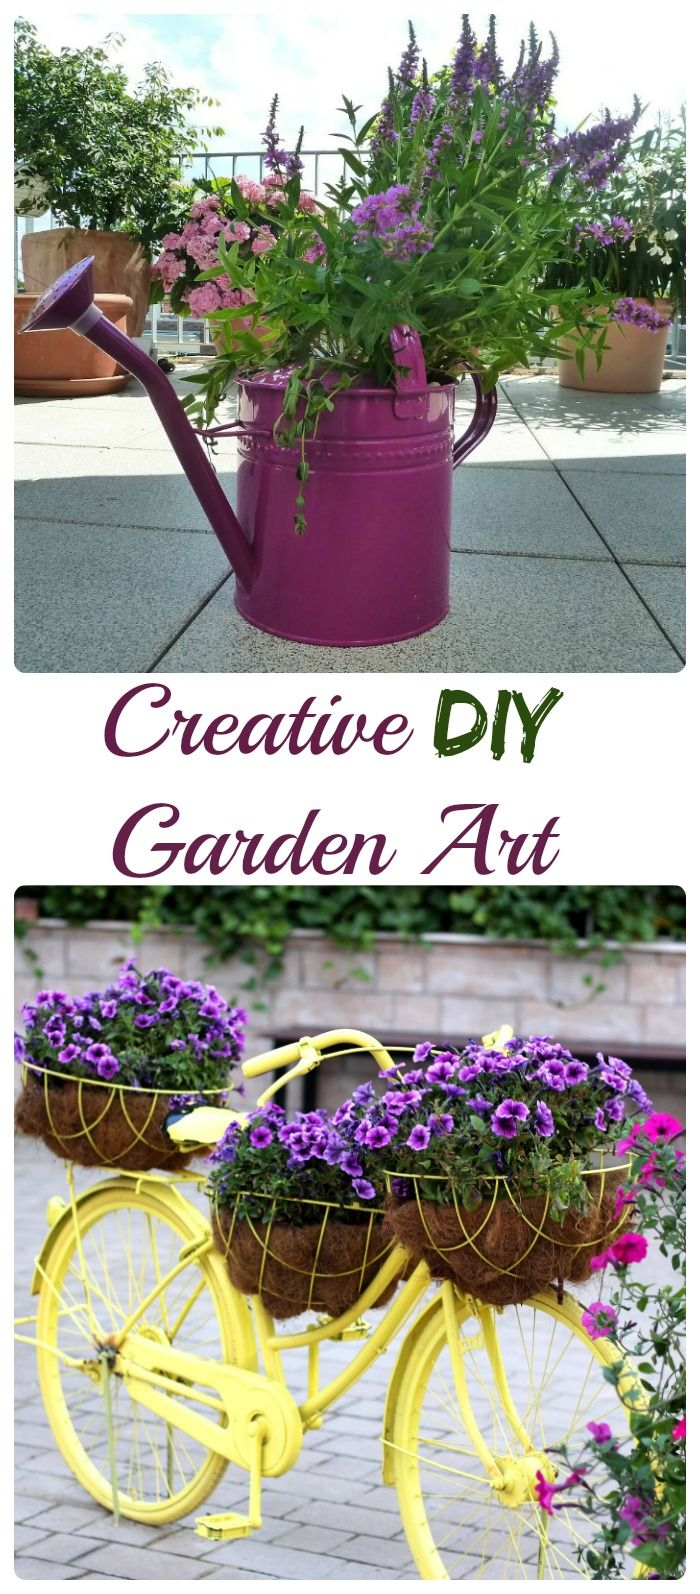 Fun Garden Art ideas- Creative ideas by Recycling turns trash to treasure and is great for home decor.